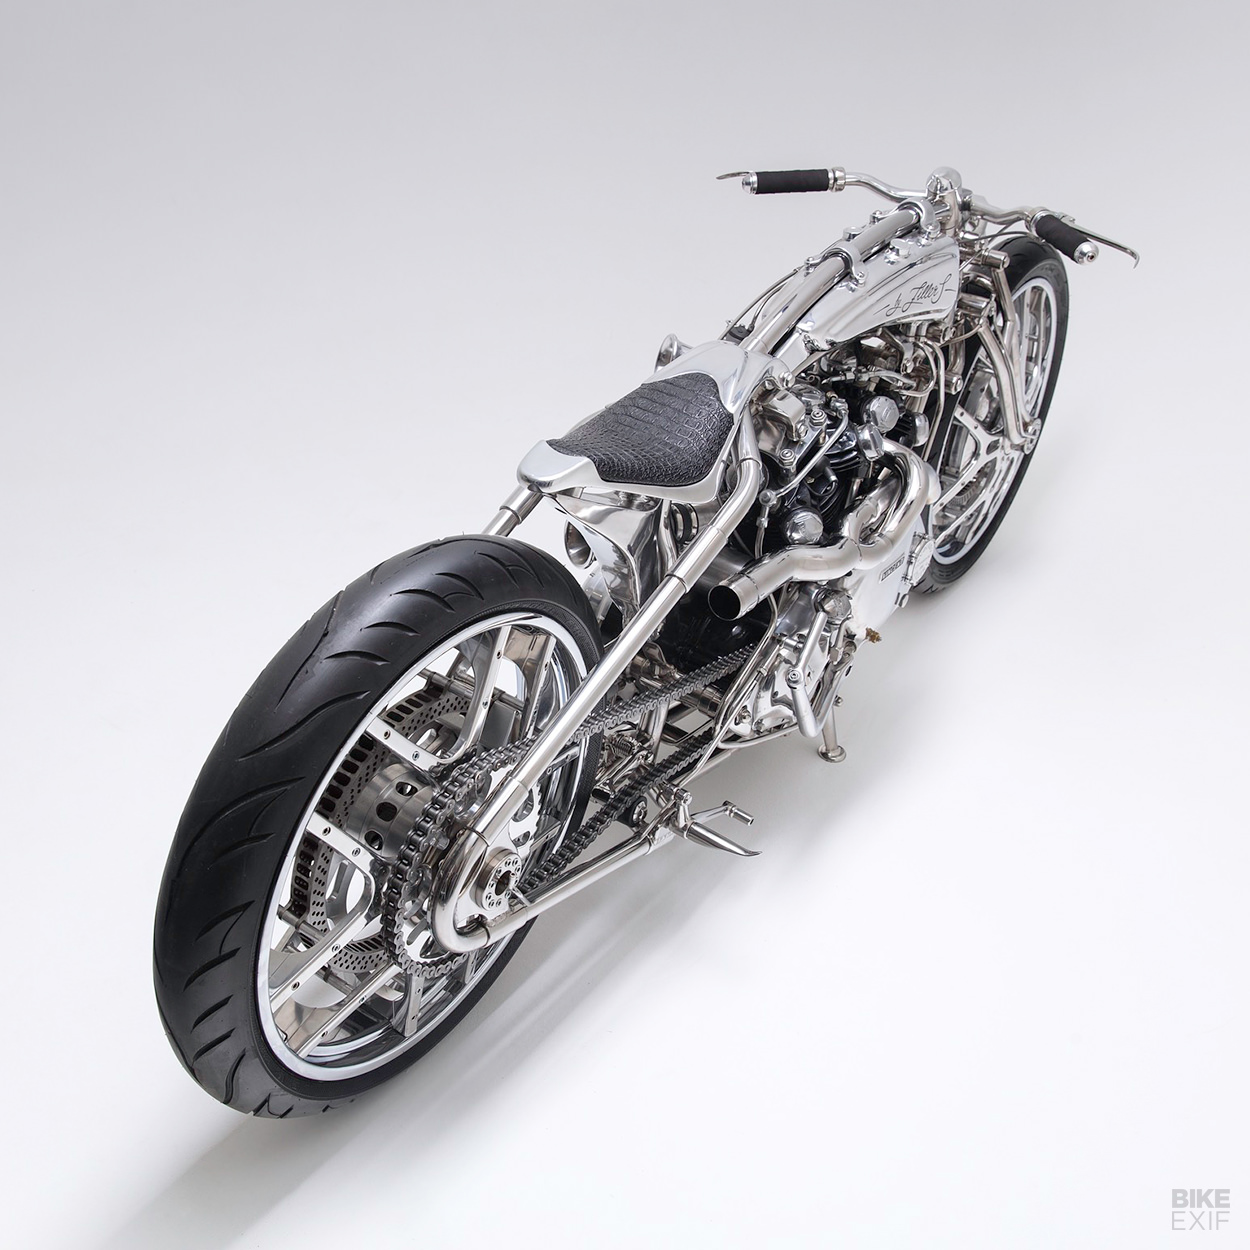 Custom Vincent Lightning by the Russian motorcycle builder Zillers Garage